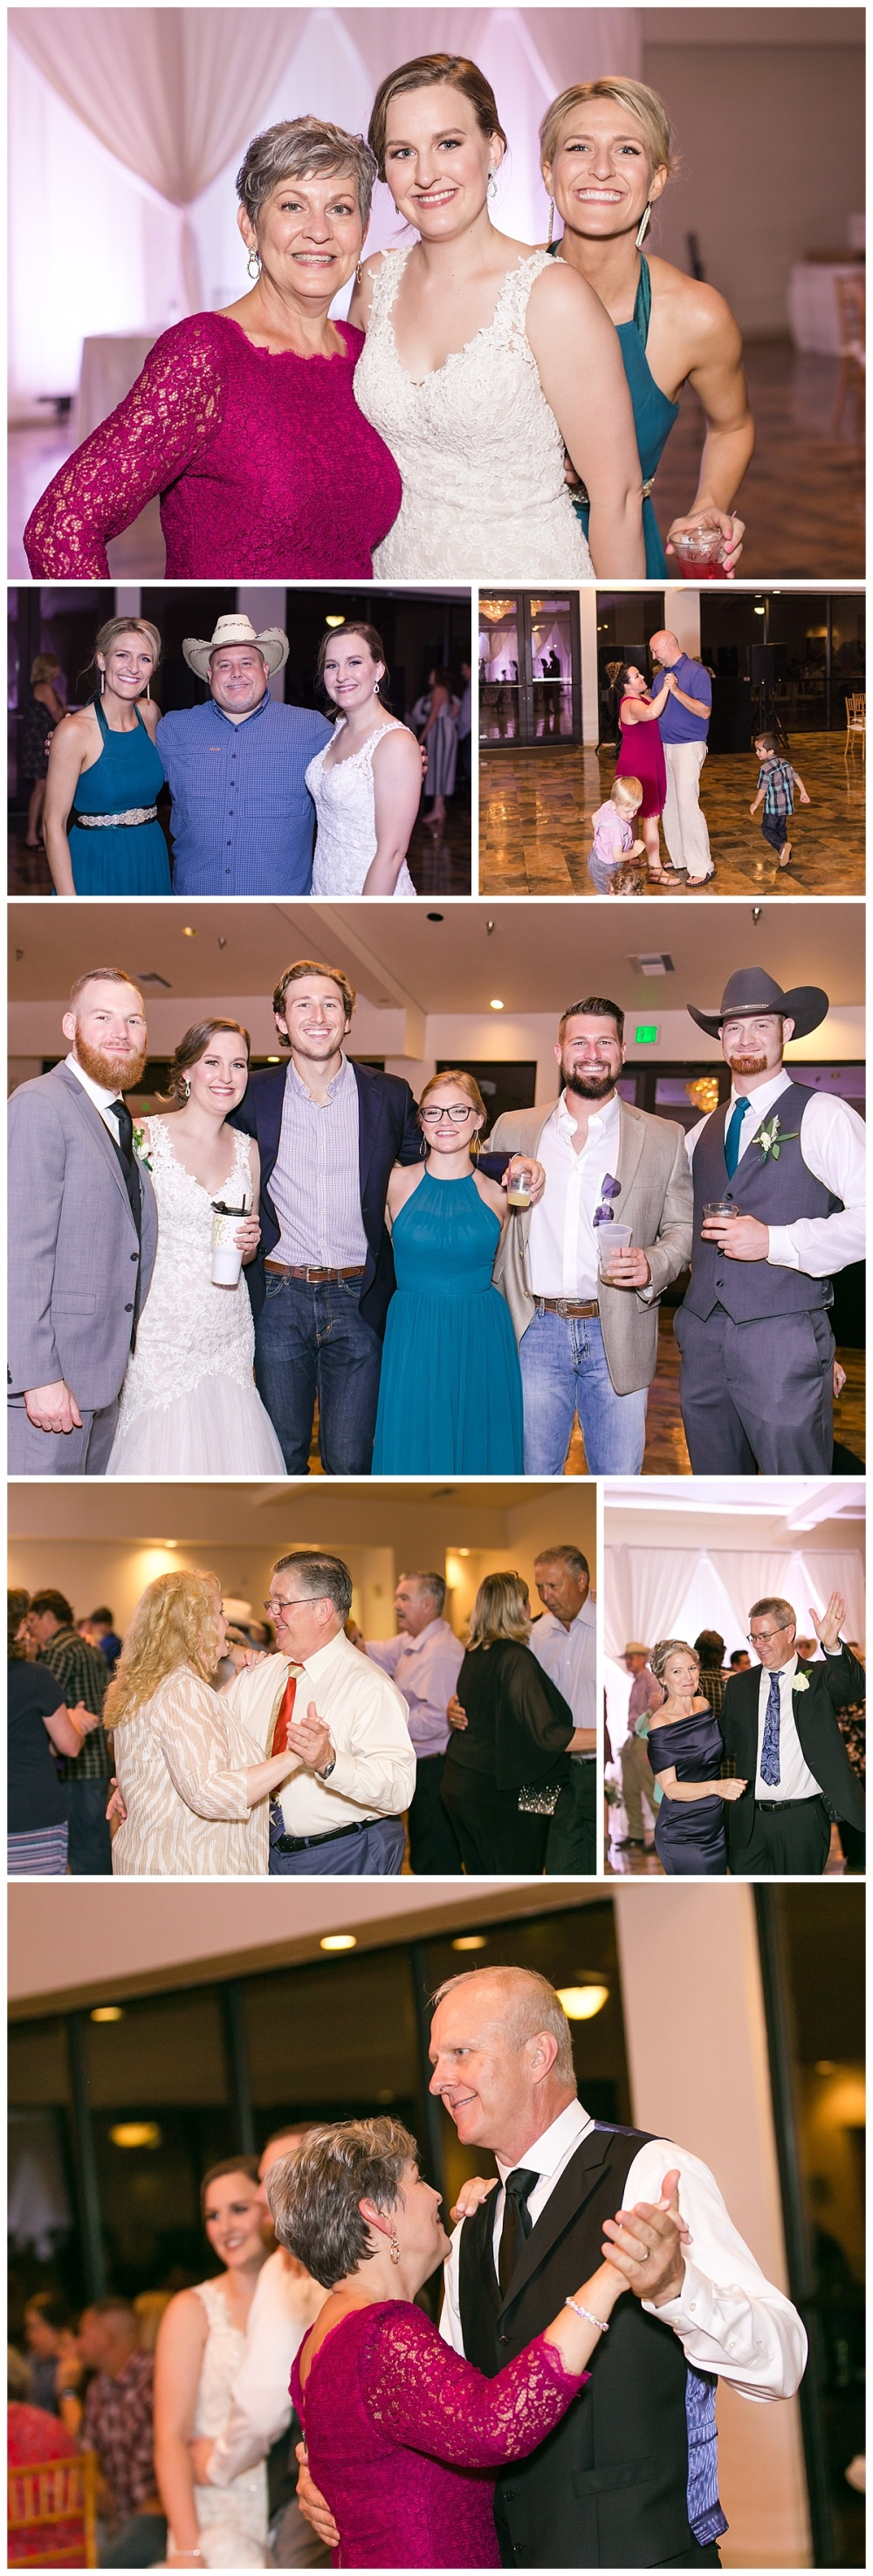 Carly-Barton-Photography-Wedding-Photos-Granberry-Hills-Event-Facility-Ryan-Chelsea-San-Antonio-Texas_0082.jpg